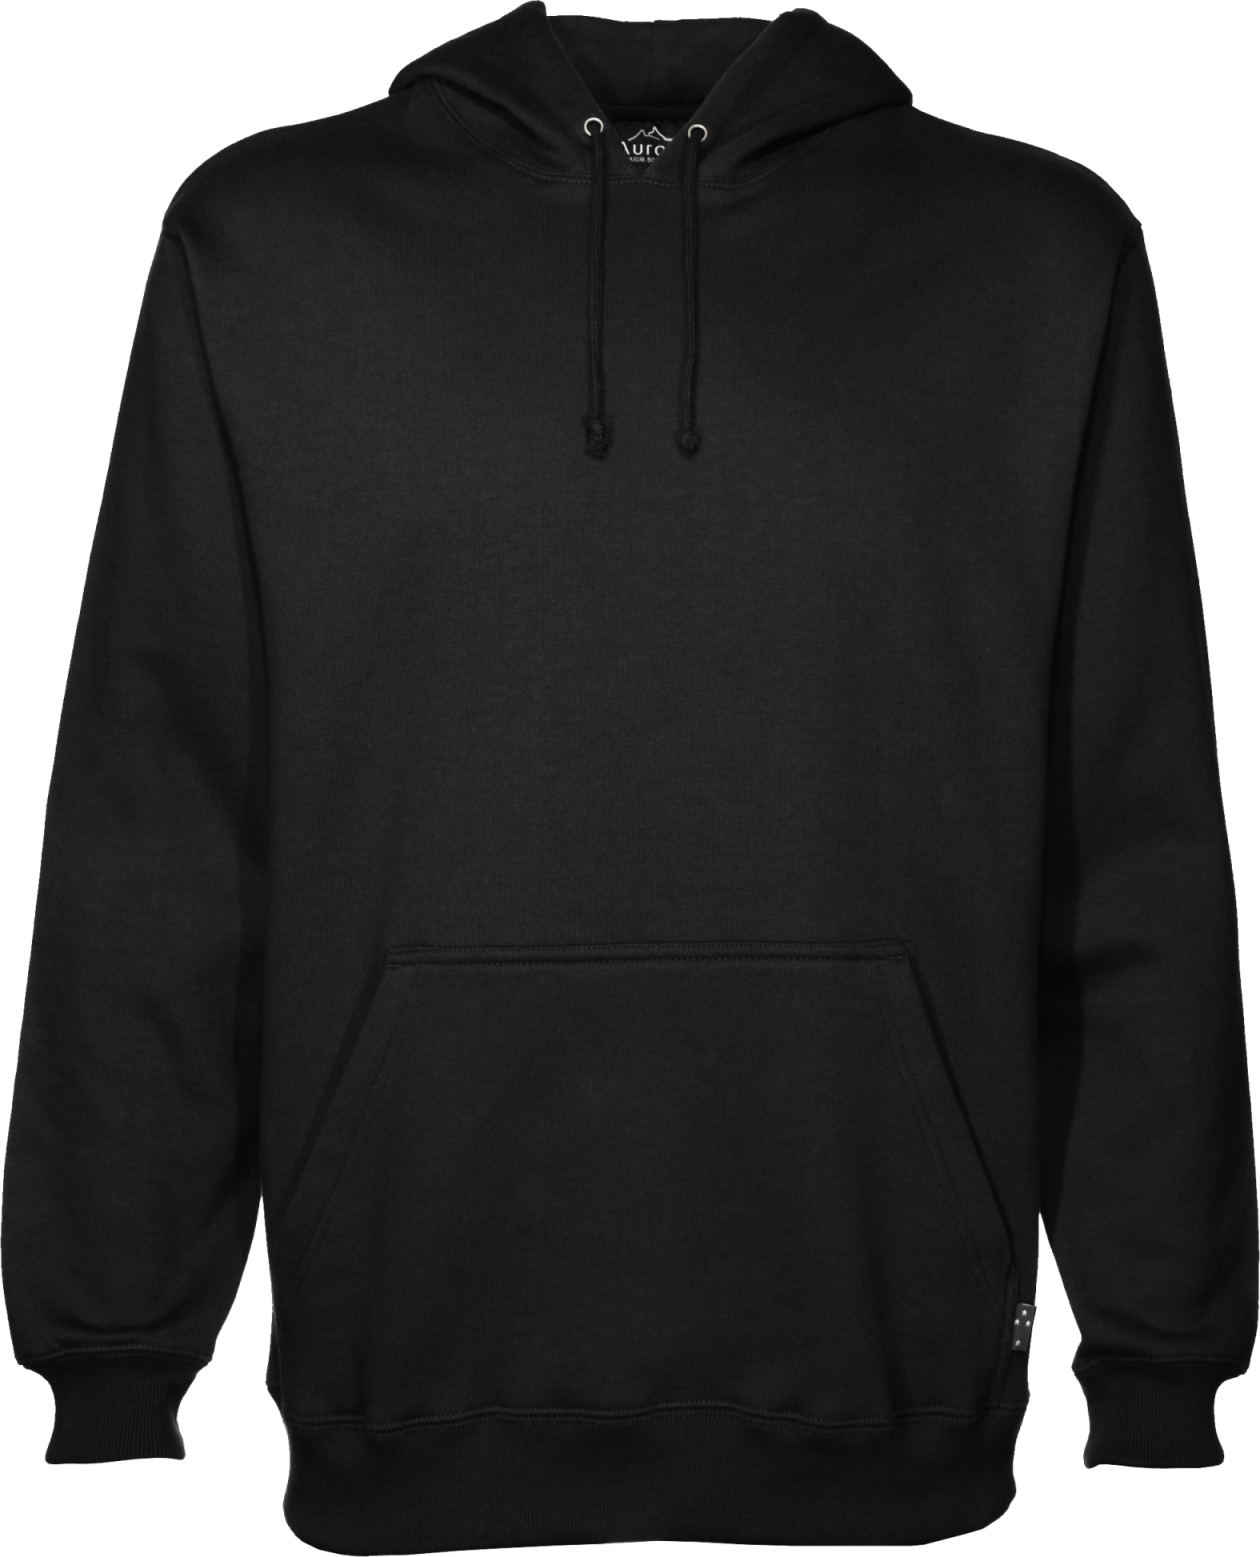 Hoodie transparent plain black. Png tarantino pinterest blackhoodiepng